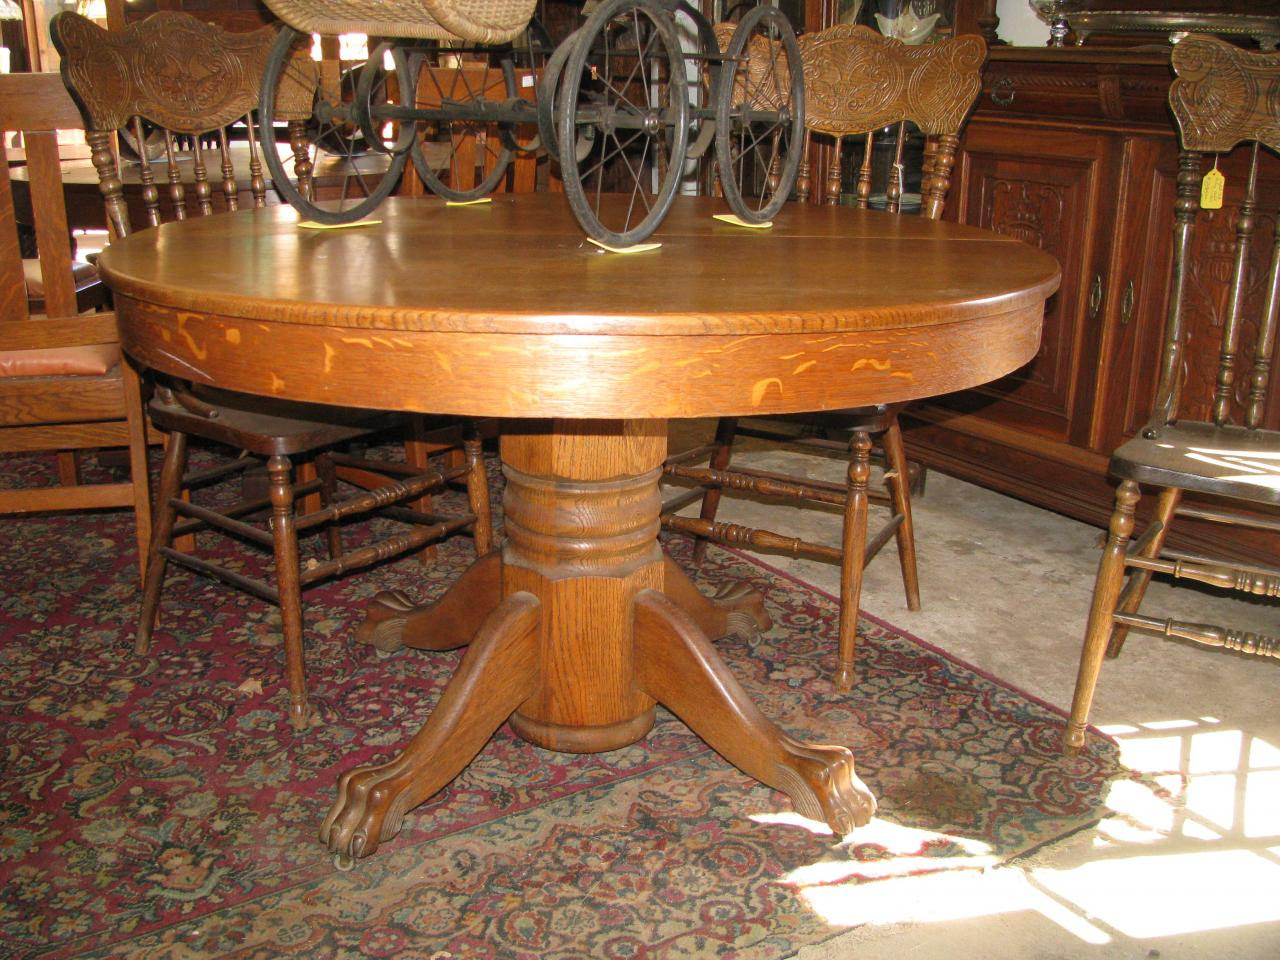 Zs Antiques Restorations Antique Oak Walnut And Pine Tables